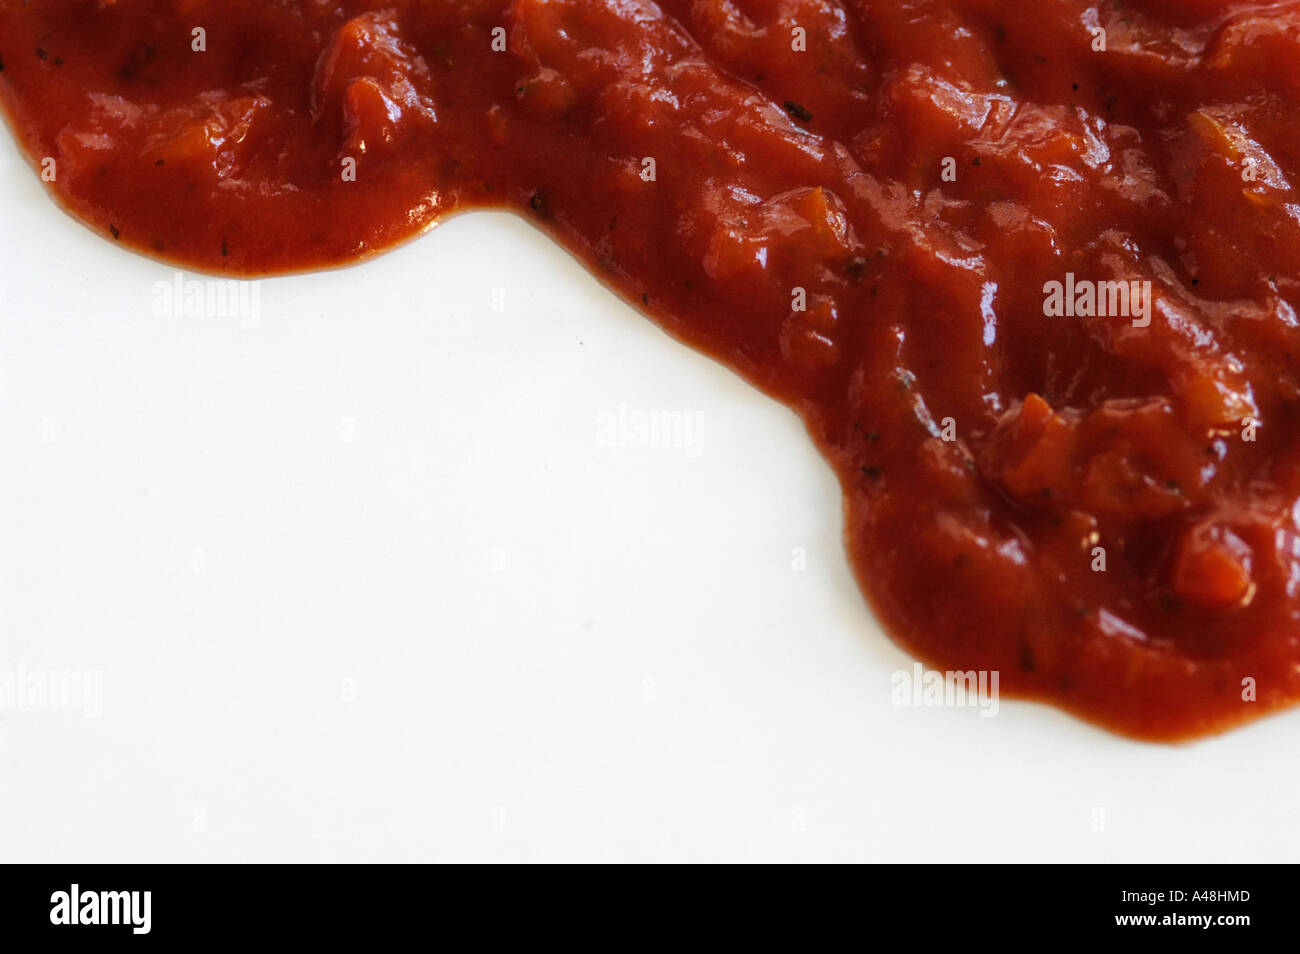 Packaged tomato passata on white background - Stock Image